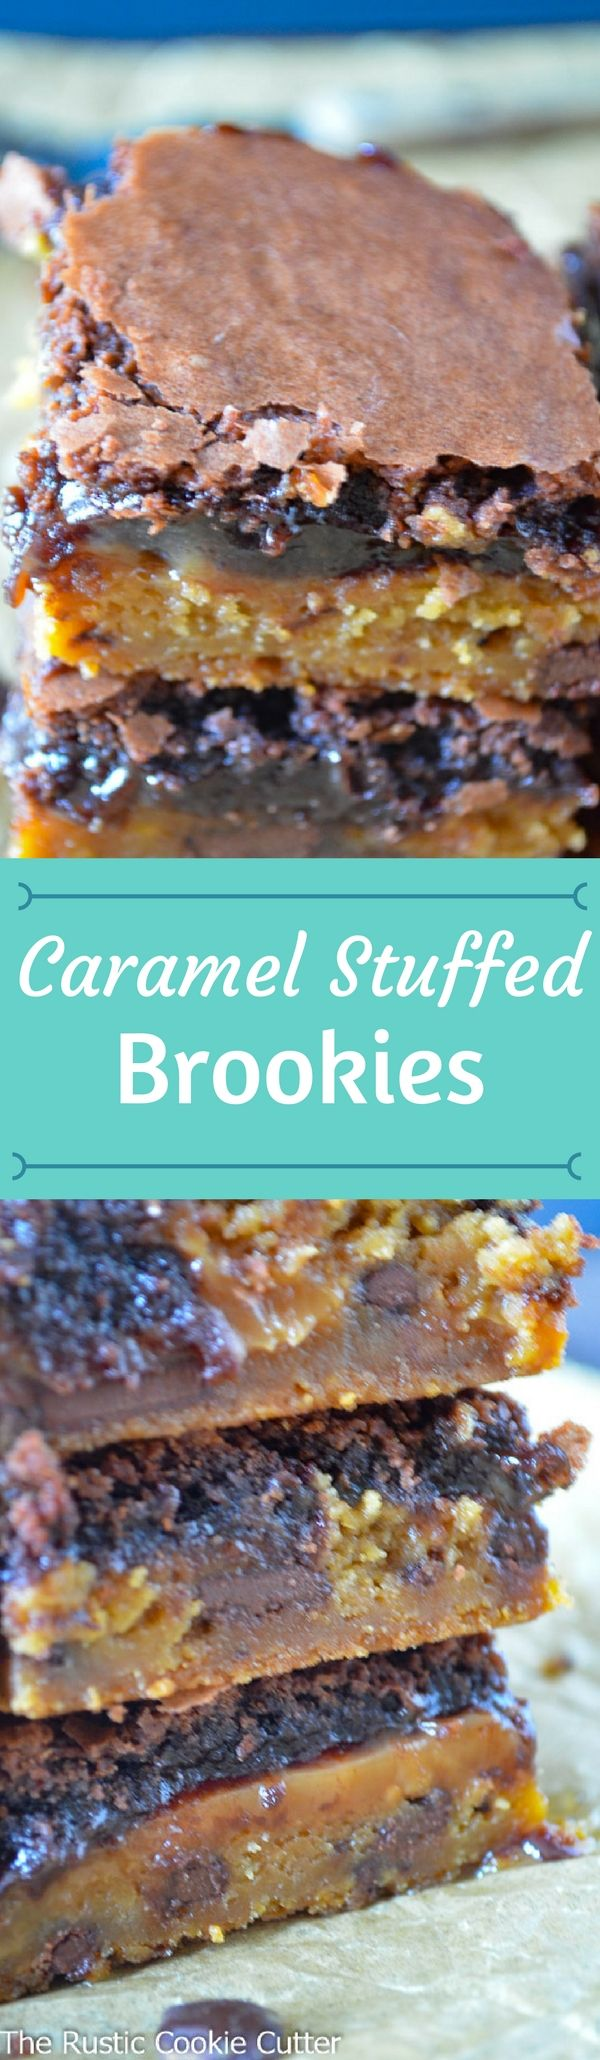 I wanted bigger! And decided a layer of caramel was just the thing!Caramel Stuffed Brookies were A-MAZ-ING! #homemade #bars #caramel #brookies